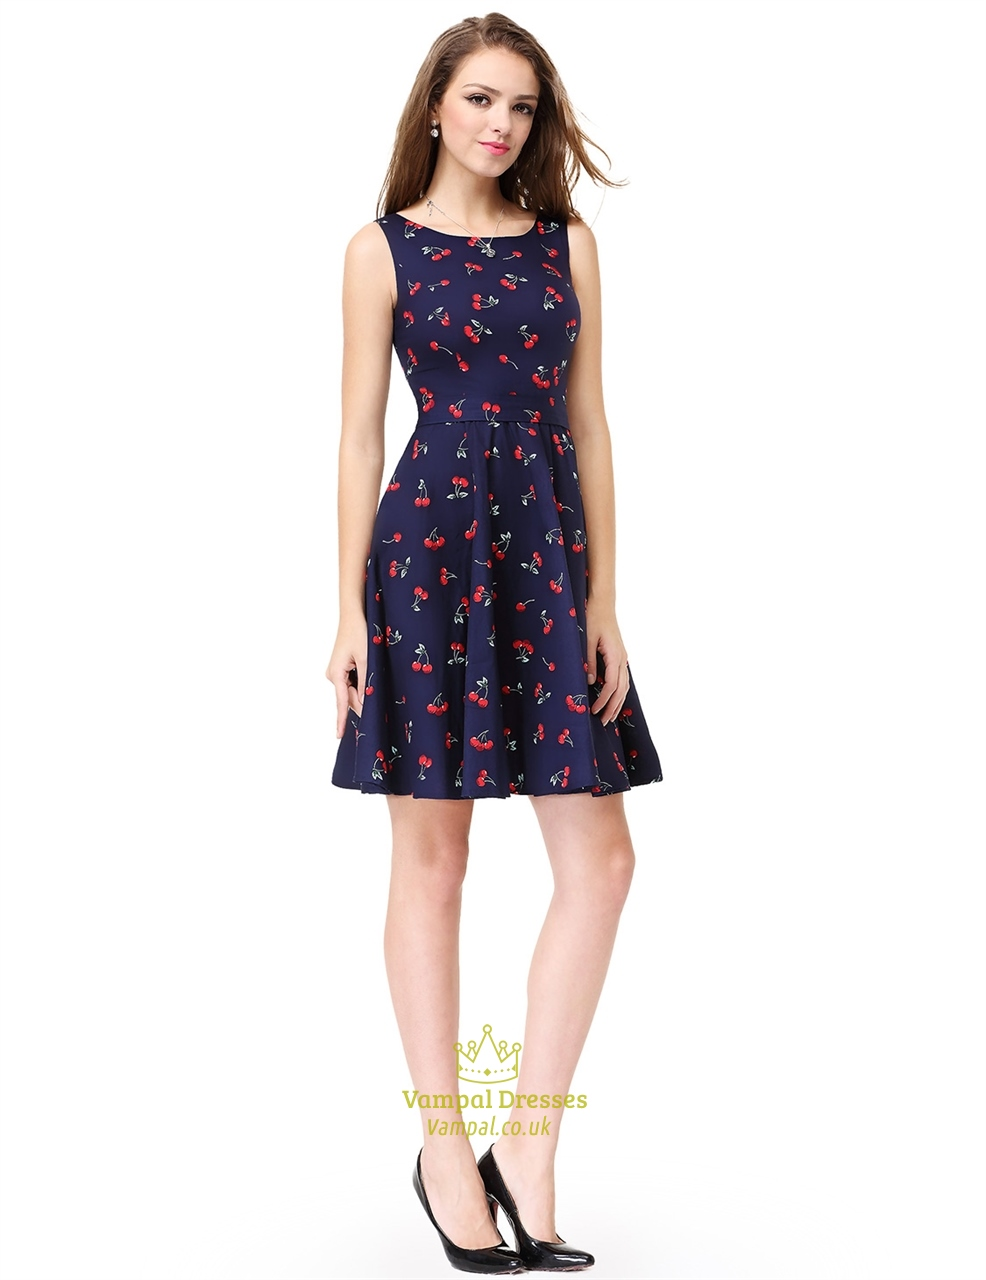 Lovely Flare Cocktail Dress Womens Cherry Print Sleeveless Round Neck Fit Womens Cherry Print Sleeveless Round Neck Fit Flare Cocktail Womens Cocktail Dresses Canada Womens Cocktail Dresses Online Aus wedding dress Womens Cocktail Dresses